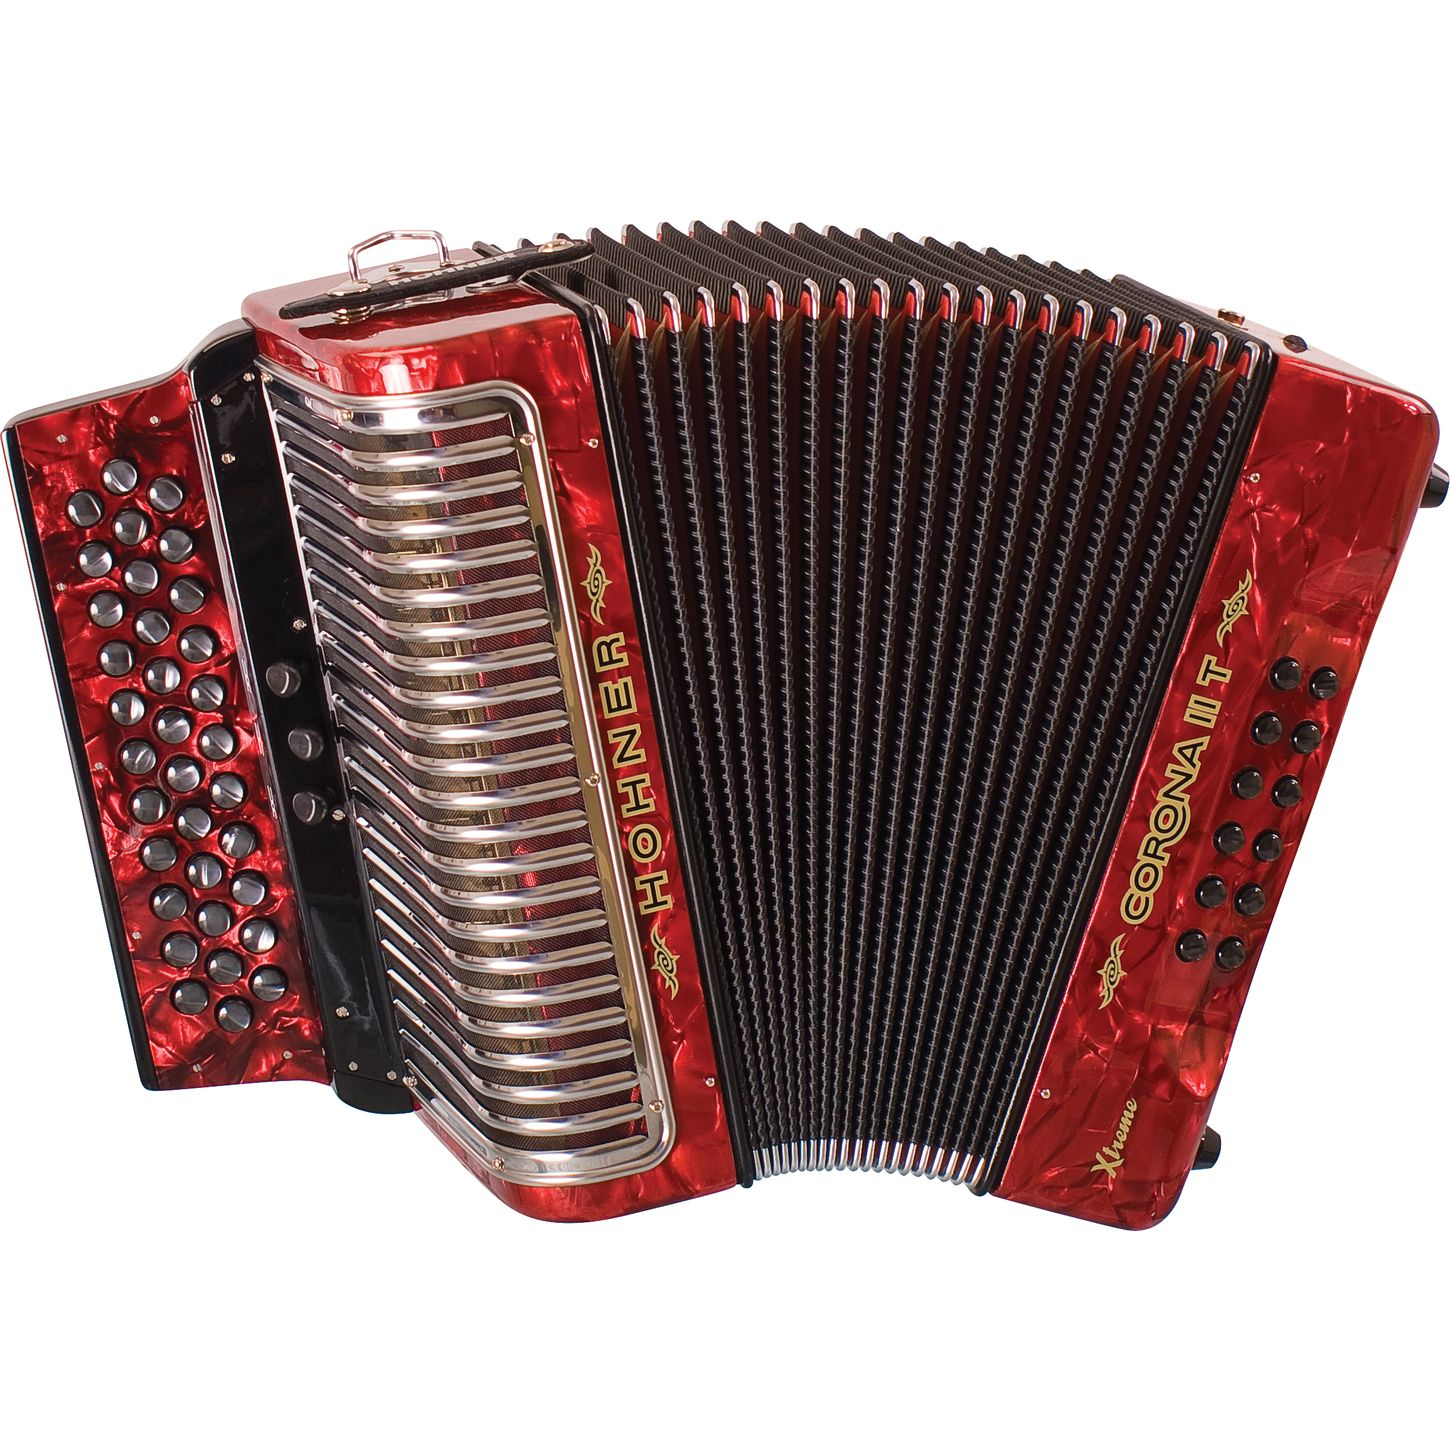 Red Hohner - Accordion, Transparent background PNG HD thumbnail